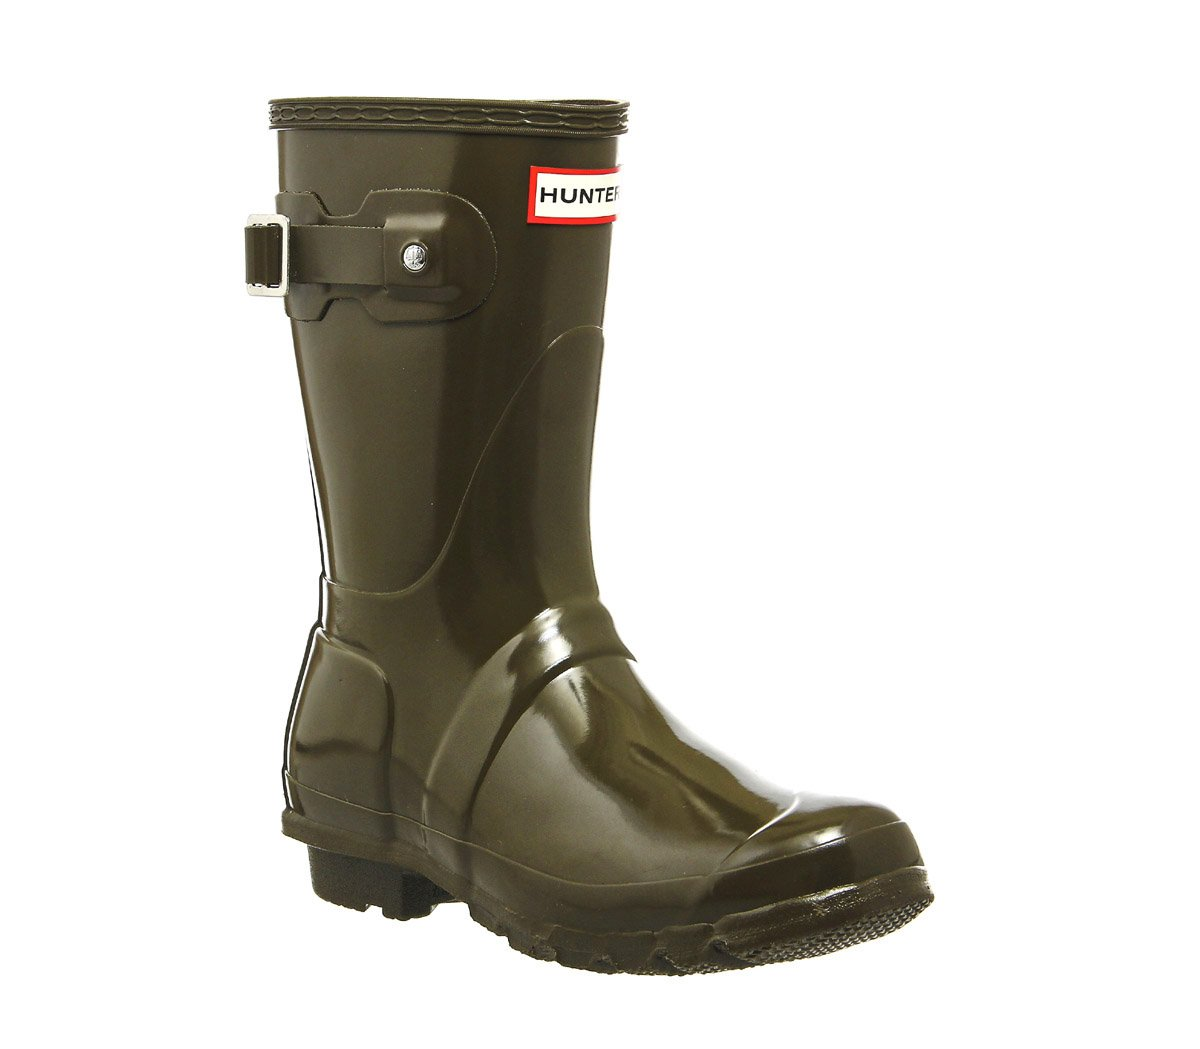 Hunter Women's Original Short Gloss Rain Boots B010A619KI 7 B(M) US|Swamp Green